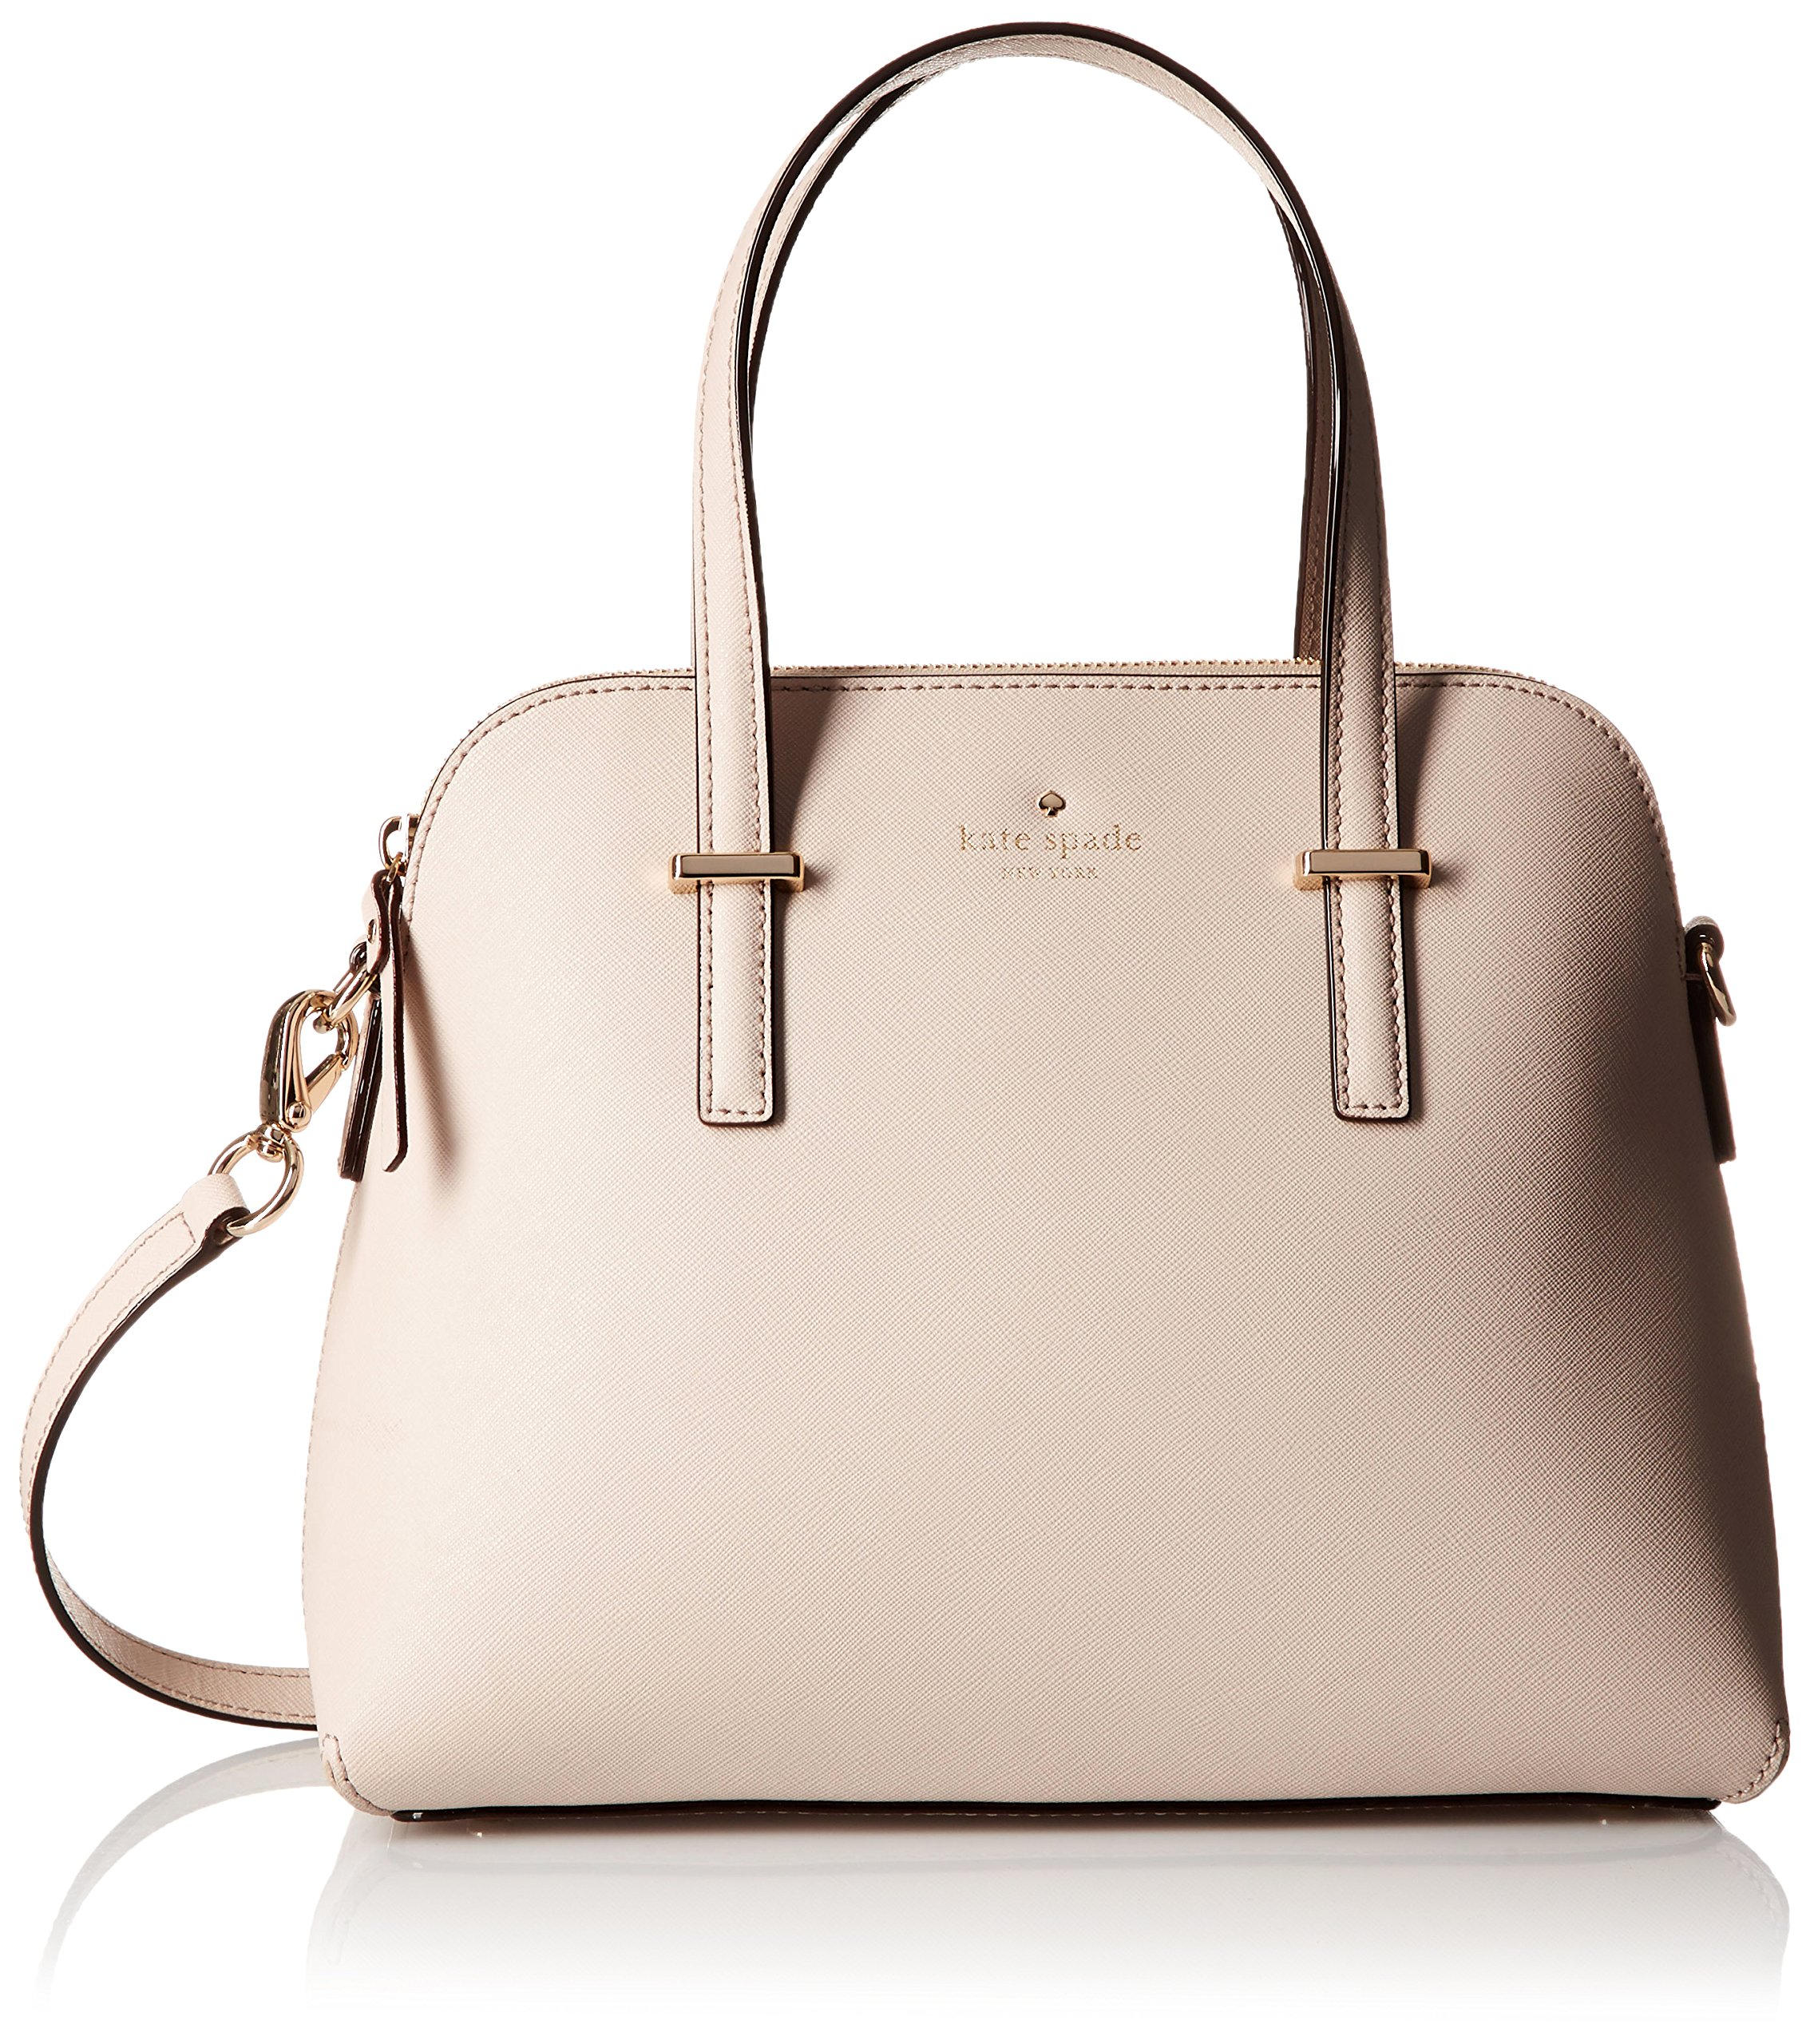 kate spade new york Cedar Street Maise Satchel Bag, Crisp Linen, One Size